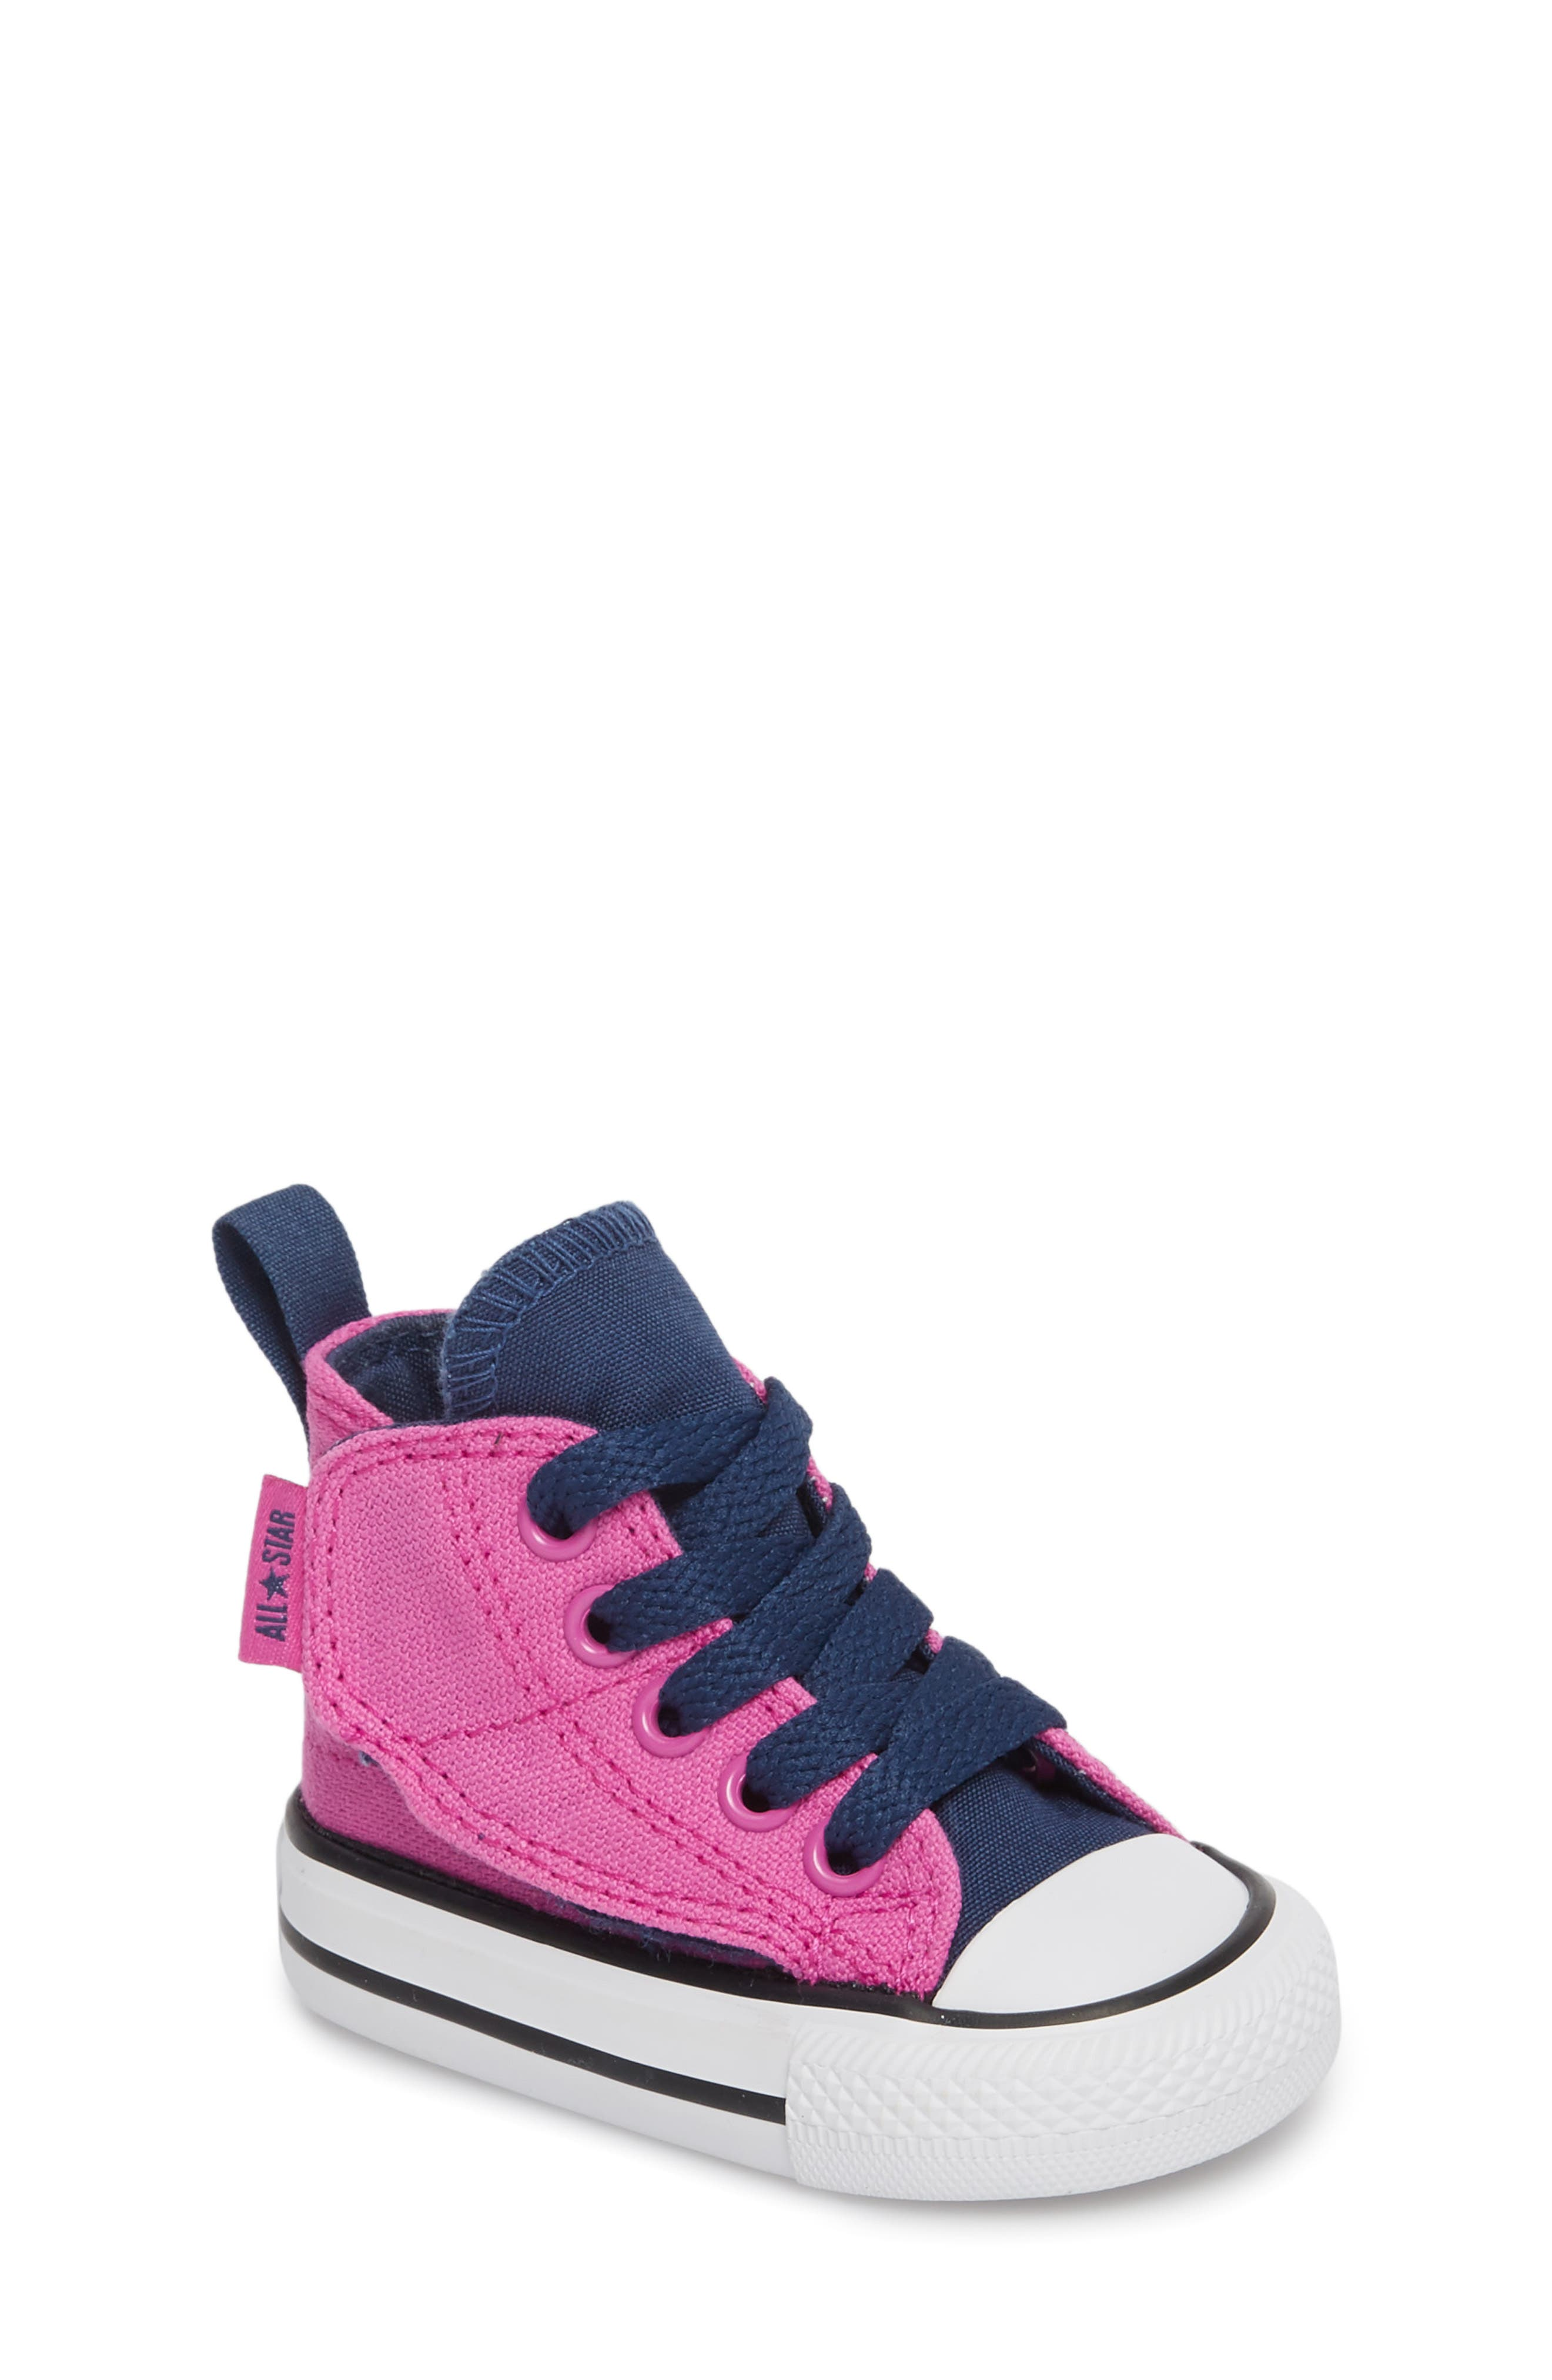 Main Image - Converse Chuck Taylor® All Star® 'Simple Step' High Top Sneaker (Baby, Walker & Toddler)